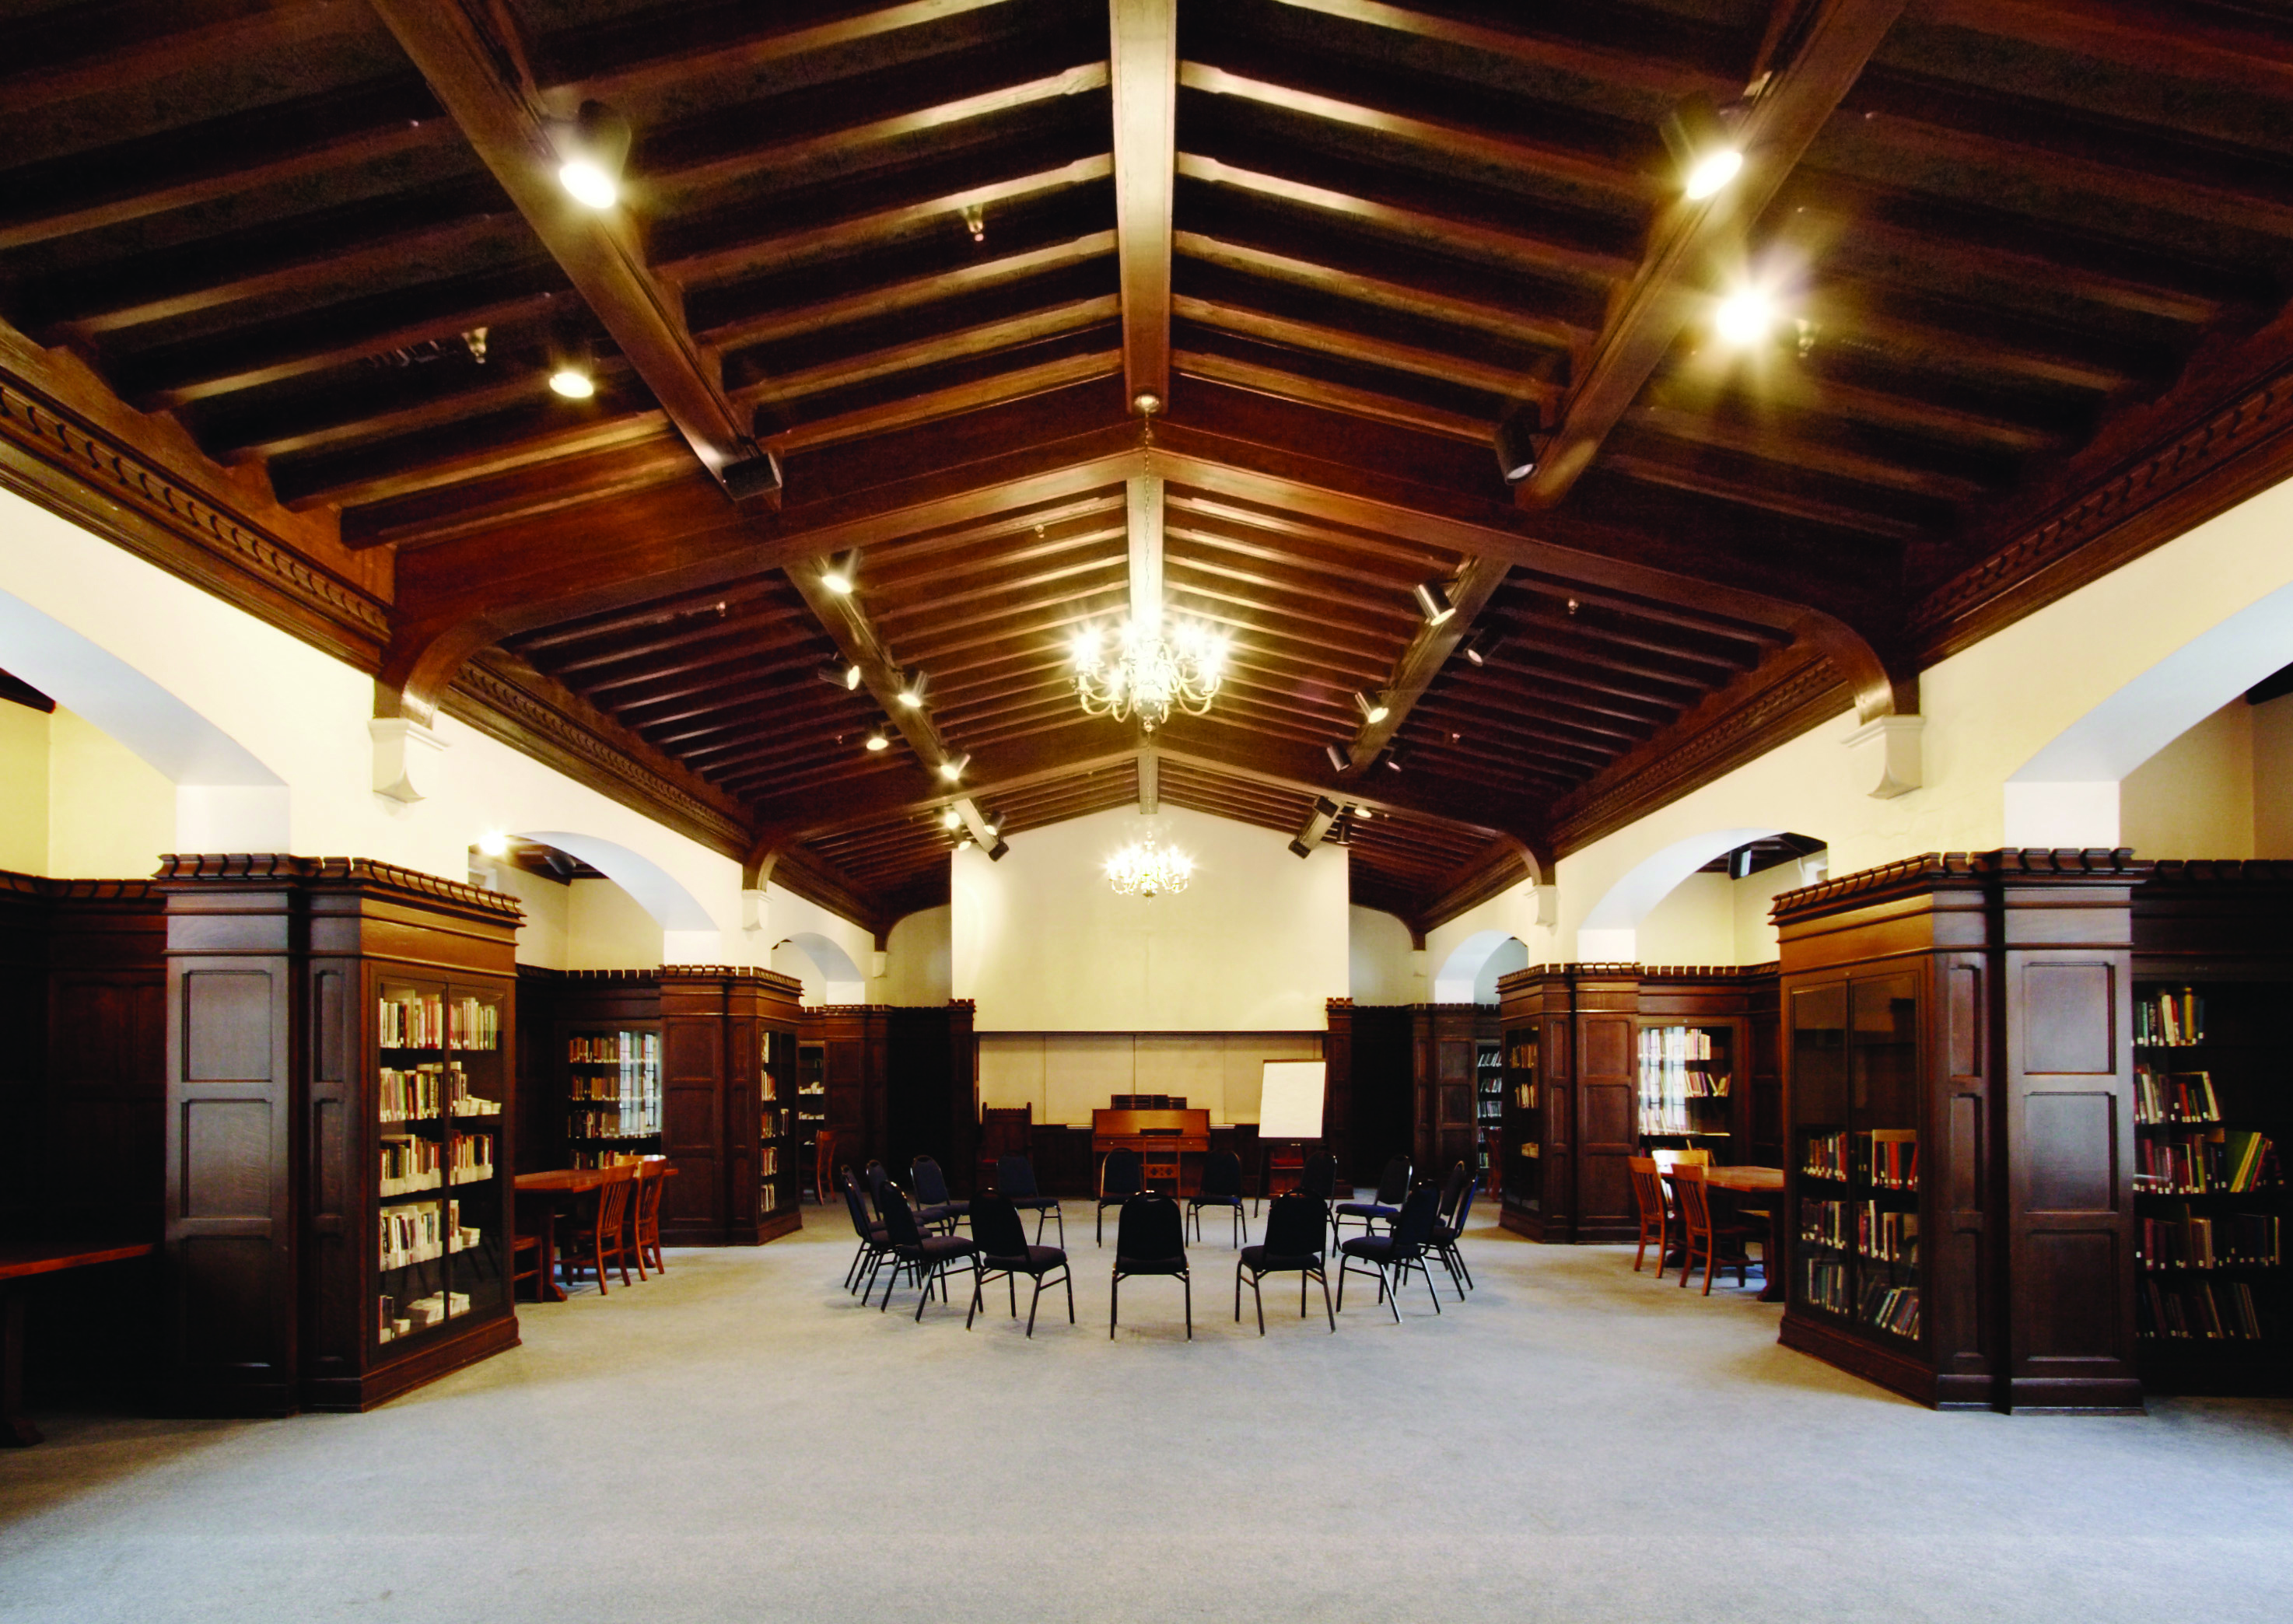 meeting room with high ceilings and dark wood paneling